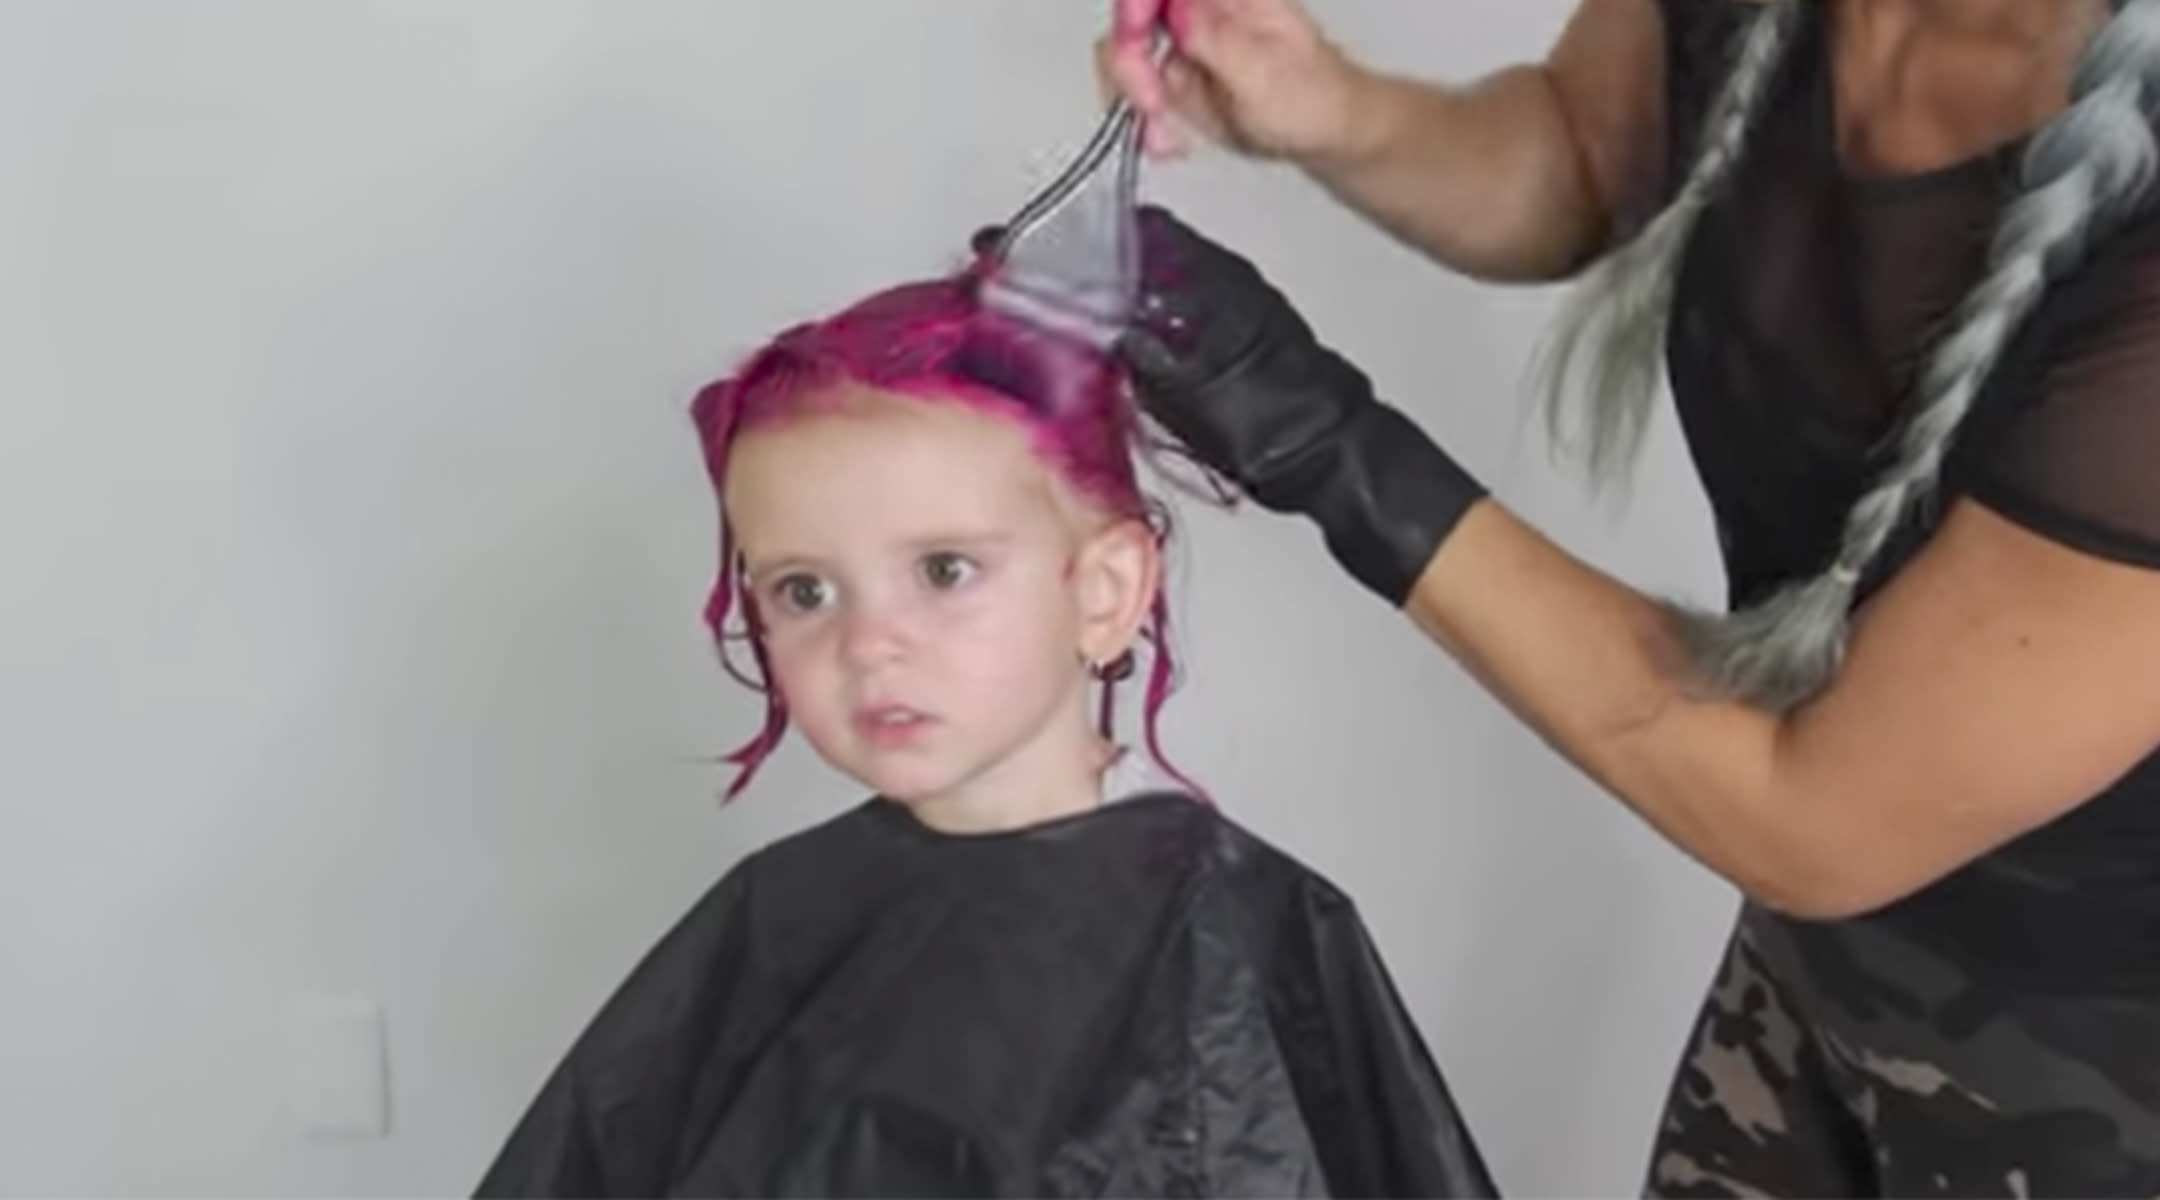 Should You Dye A Toddlers Hair New Post Sparks Debate